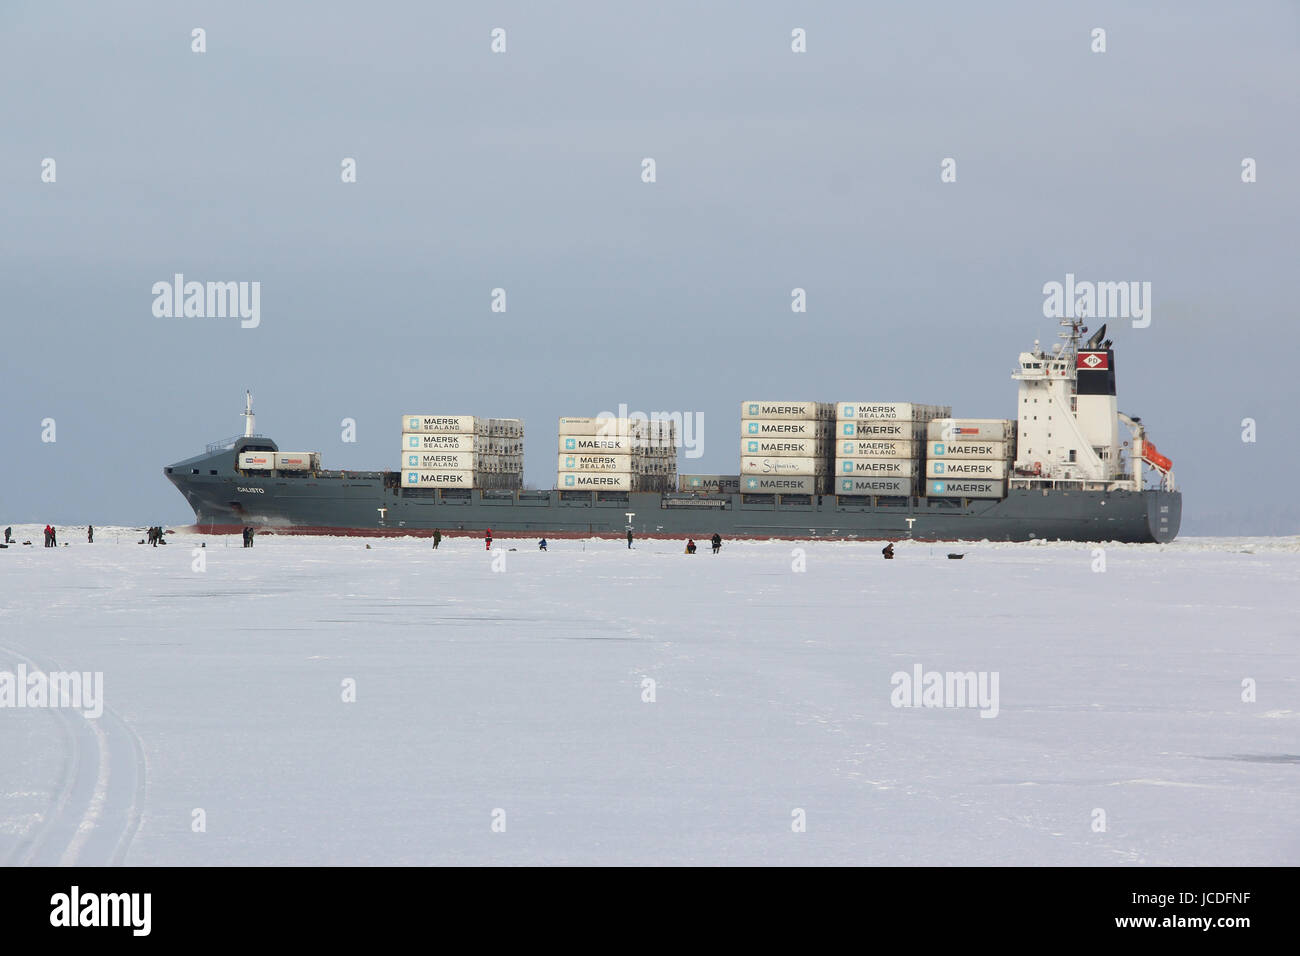 Commercial ship 'Calisto' is loaded with containers 'MAERSK sealand' through the ice at the destination - Stock Image